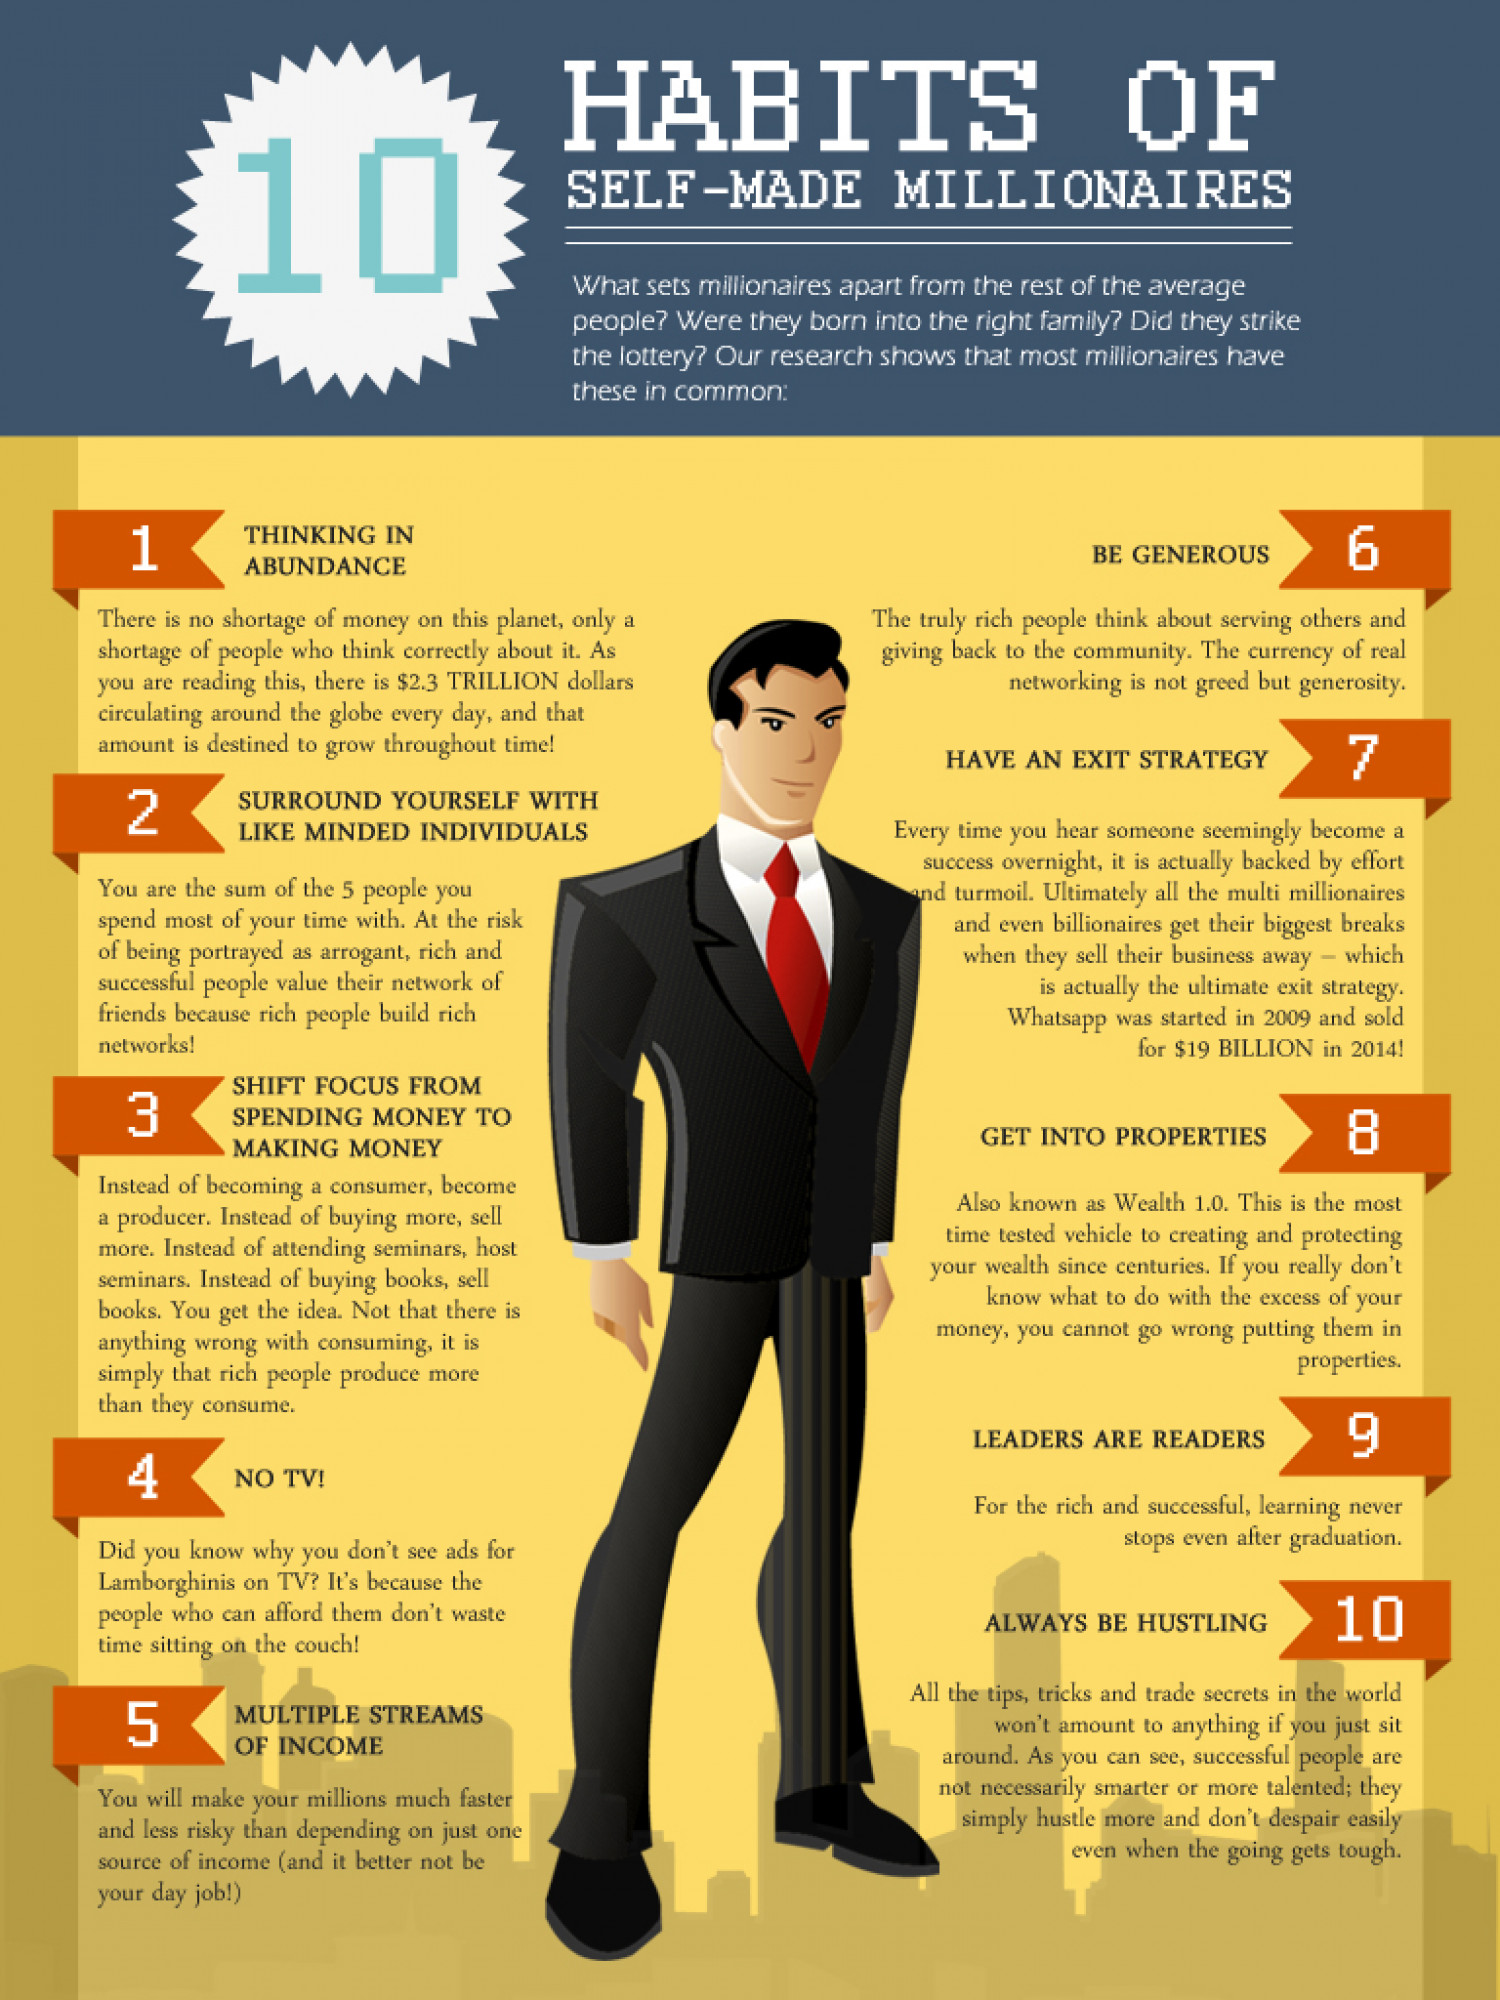 10 Habits of Self-Made Millionaires Infographic